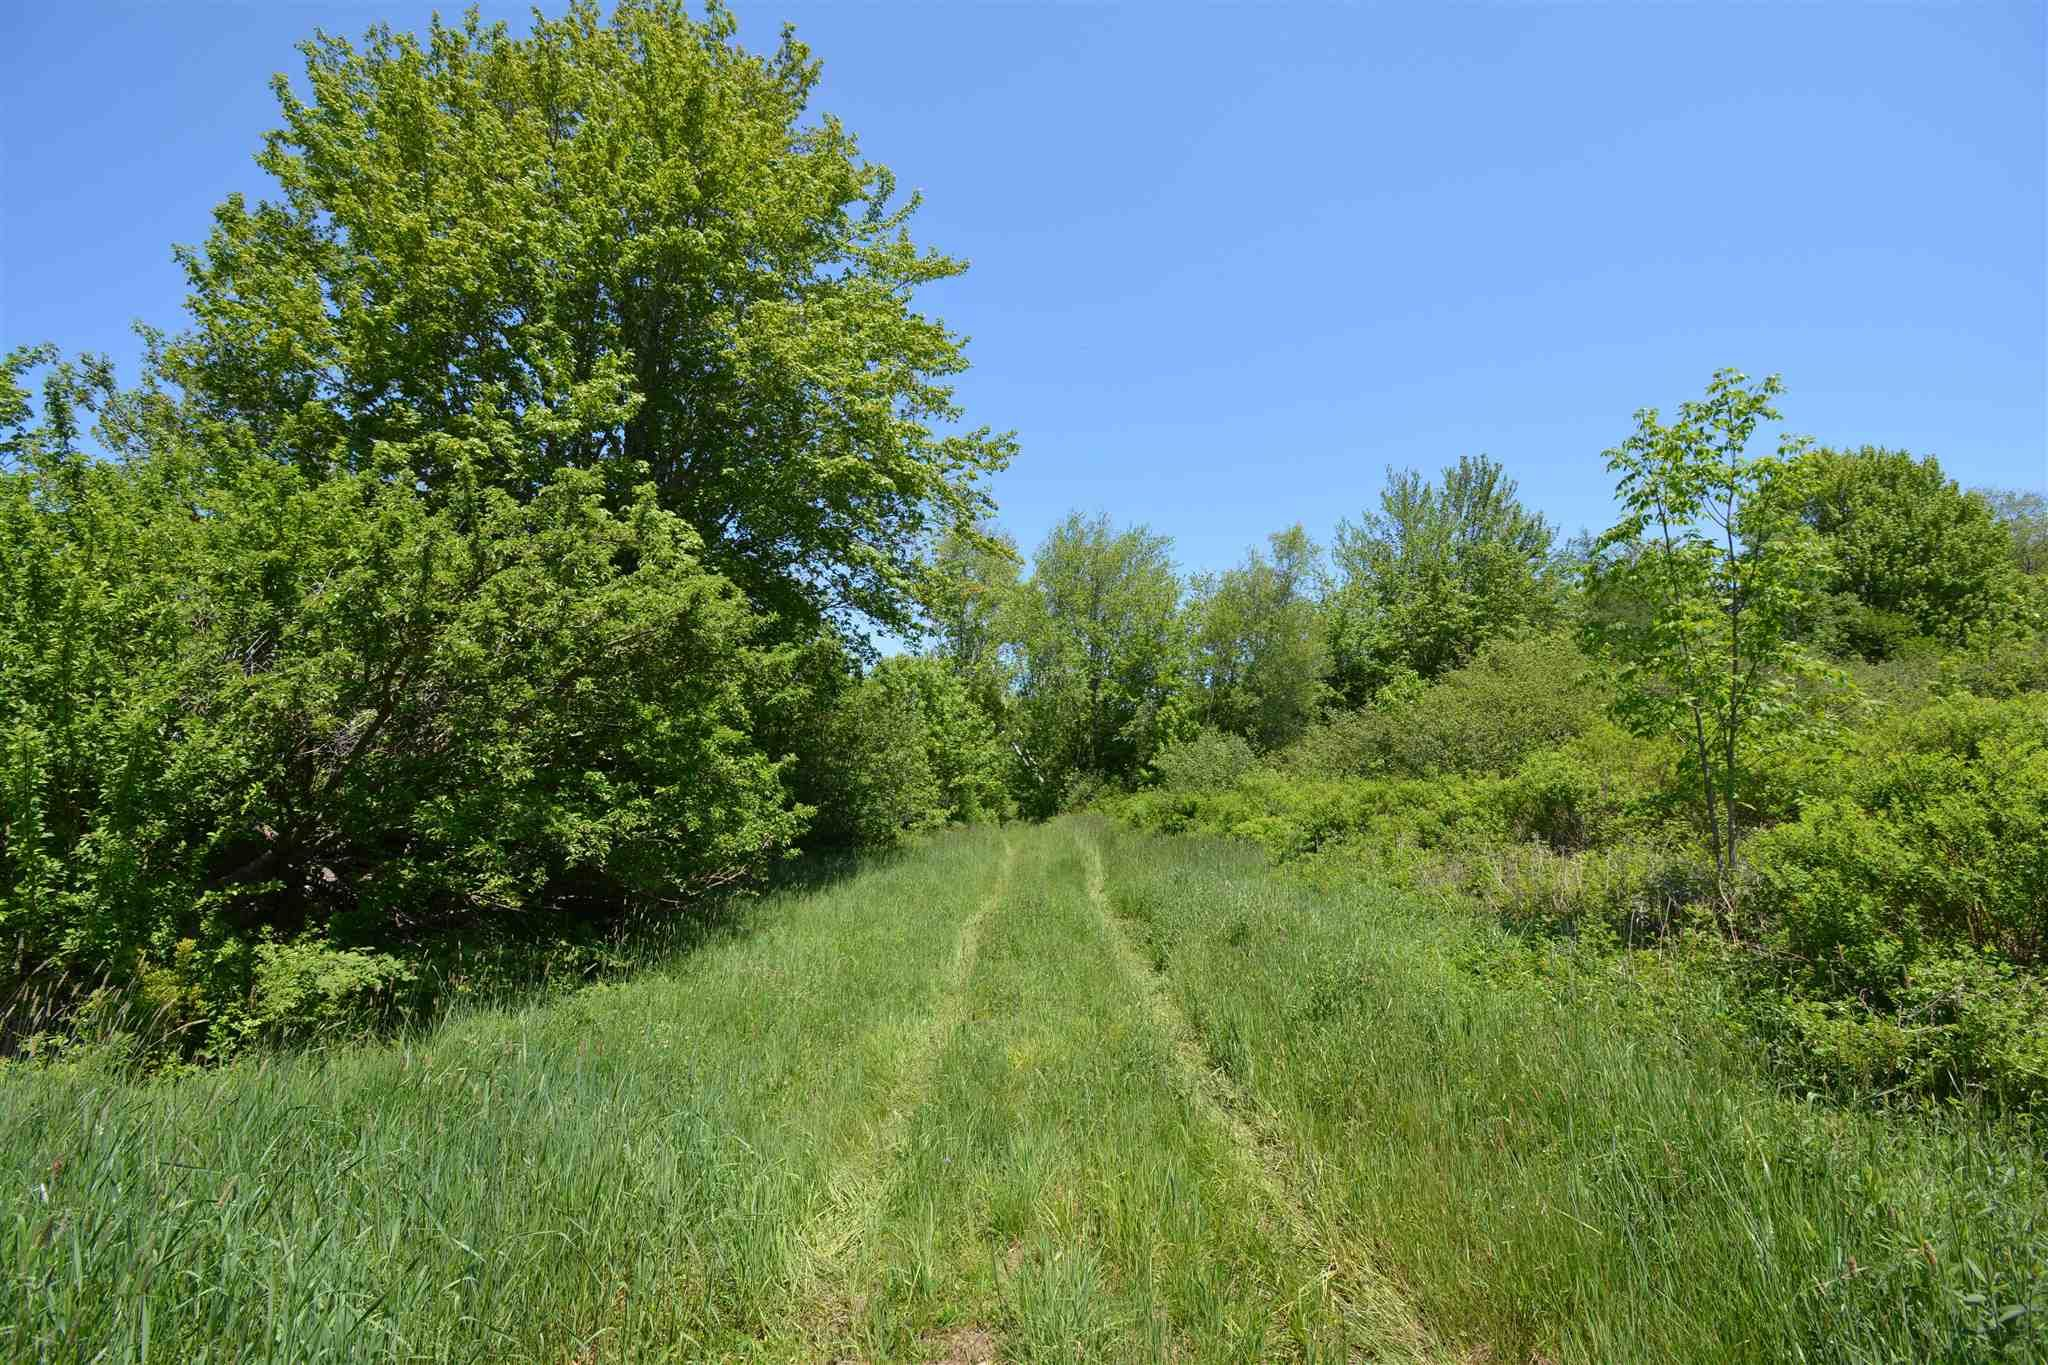 Main Photo: Lot Townshipline Road in Ohio: 401-Digby County Vacant Land for sale (Annapolis Valley)  : MLS®# 202114115